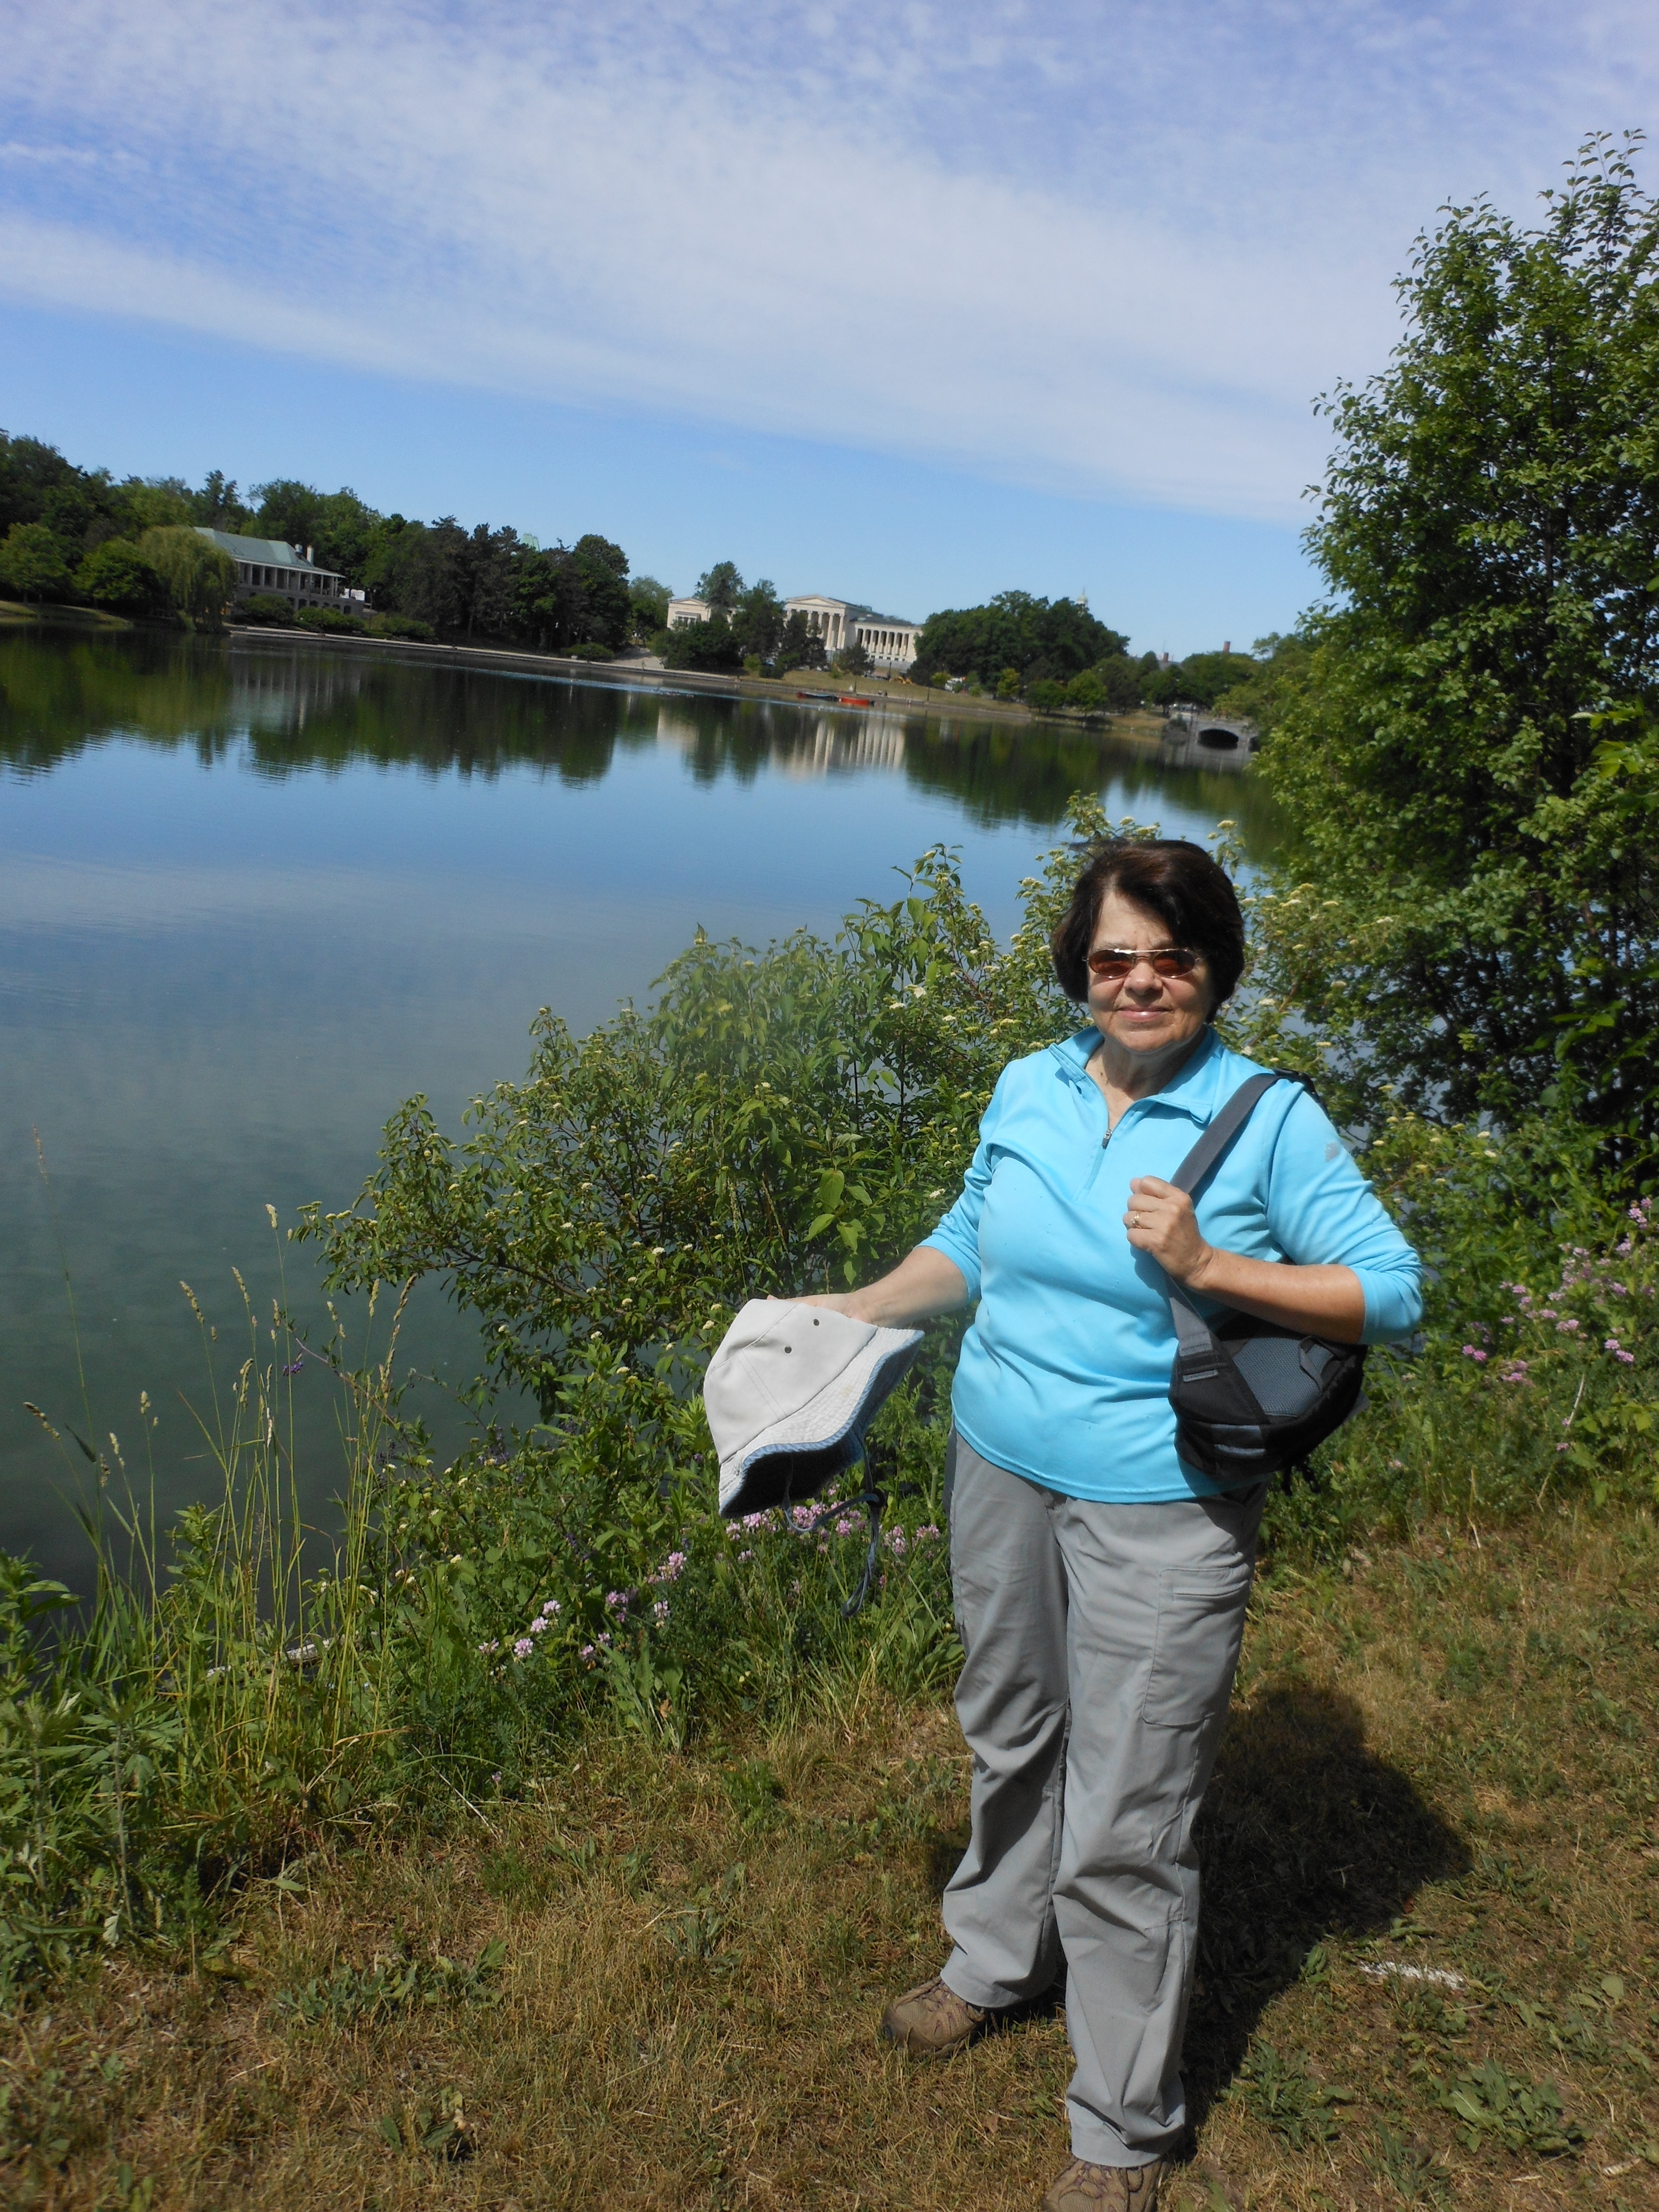 Donna Flood, Foothills Trail Club president, took in the sights and shared hiking lore and layouts during a sauntering session around Delaware Park Lake.